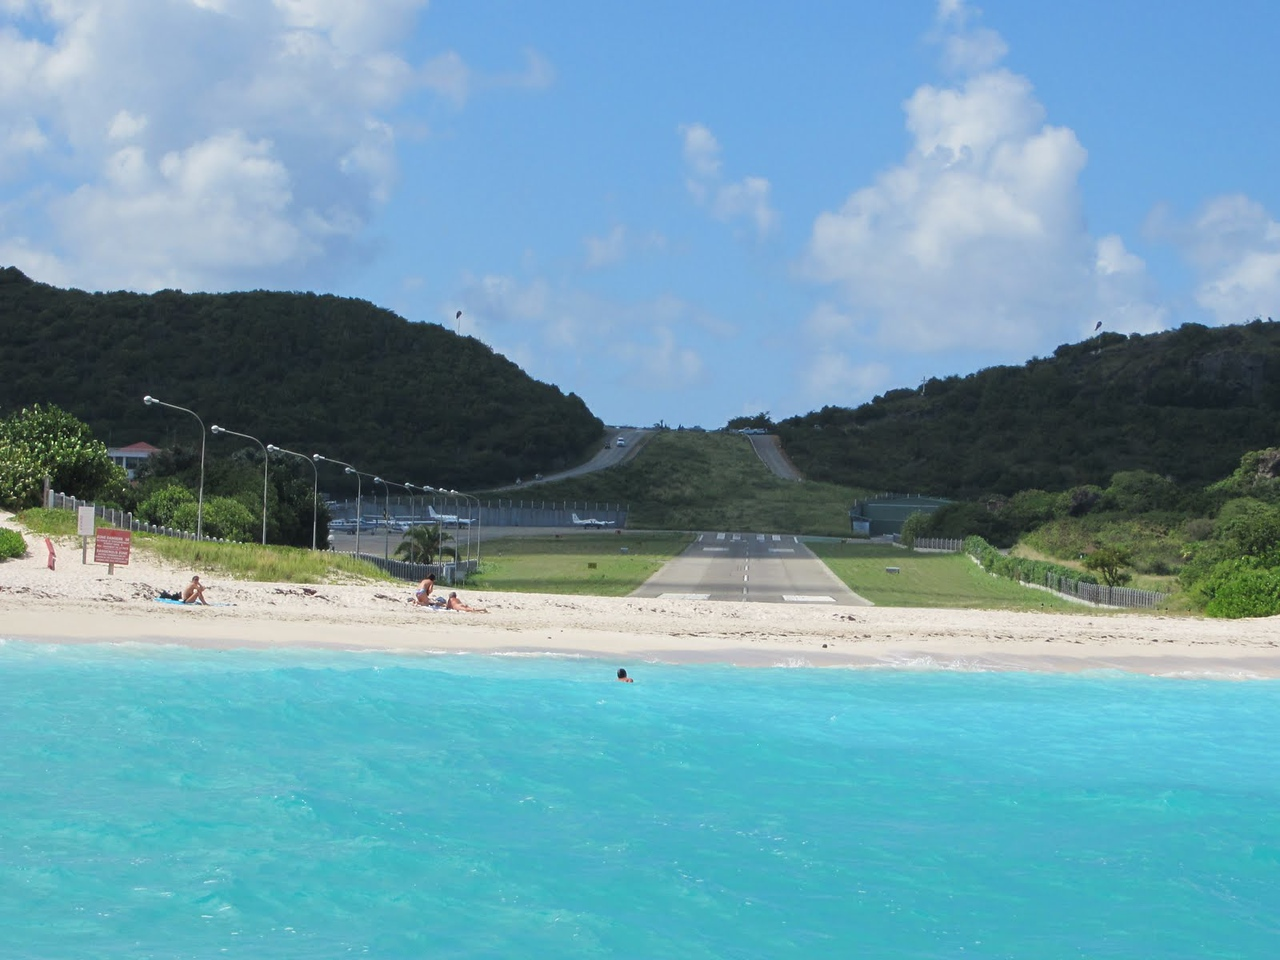 St. Barts Airport!